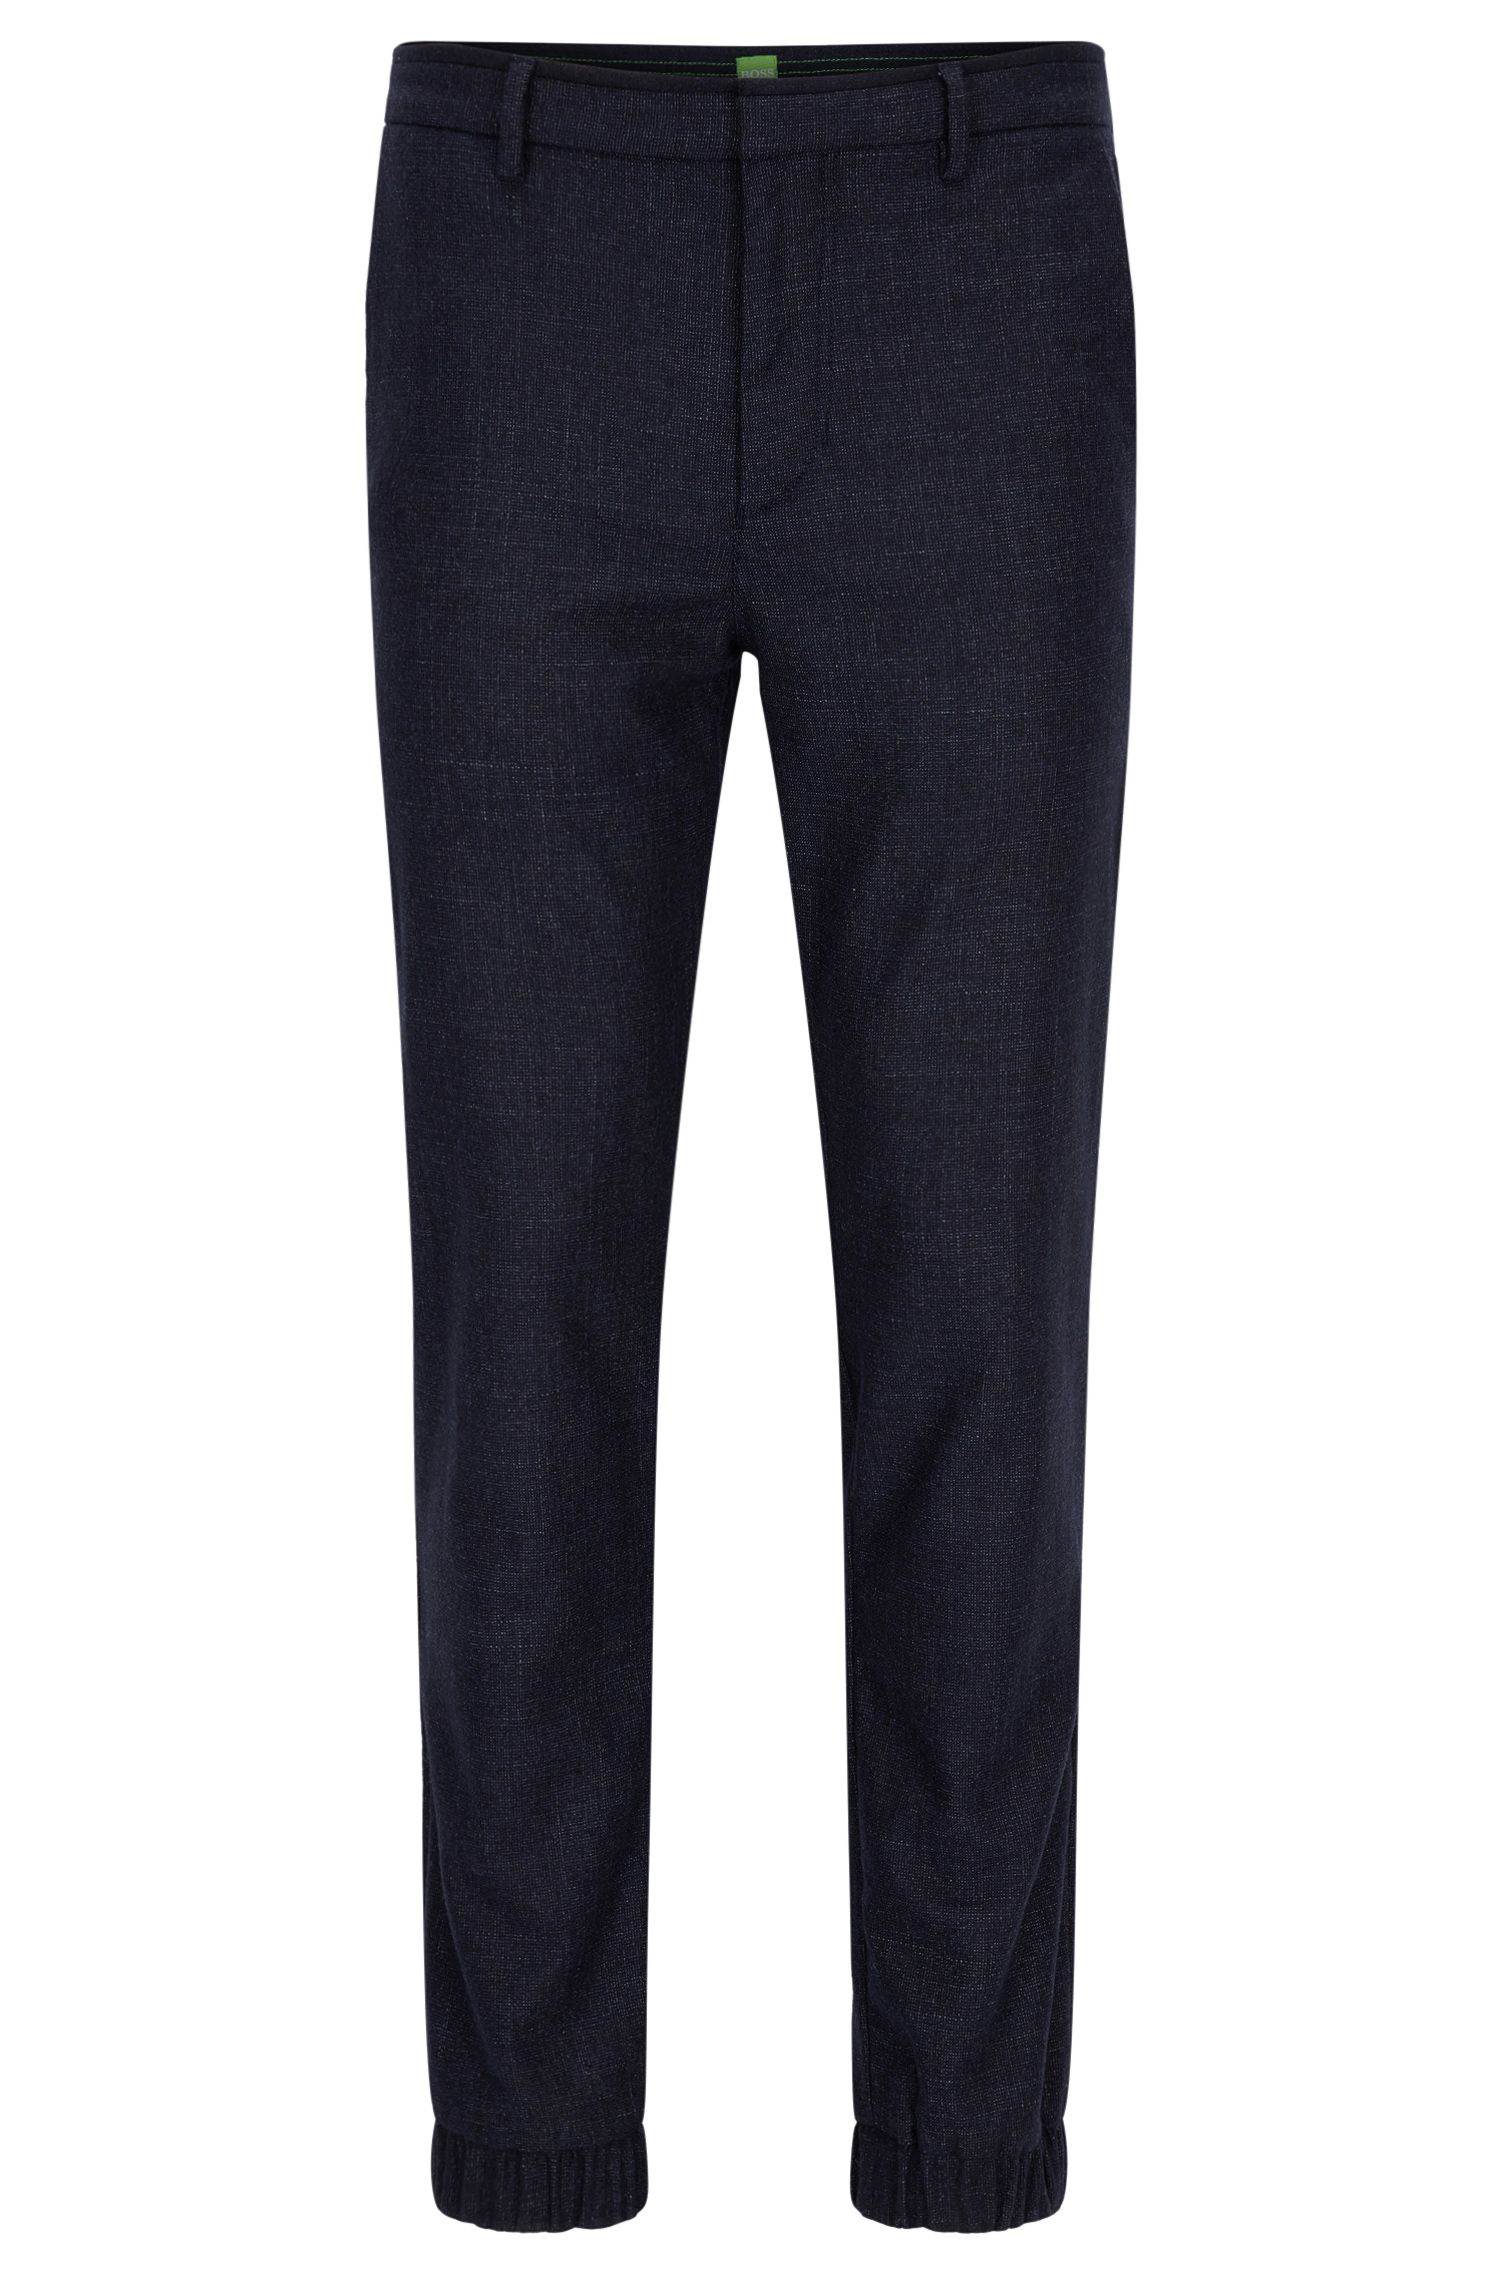 Pantalon Slim Fit en tweed de laine mélangé